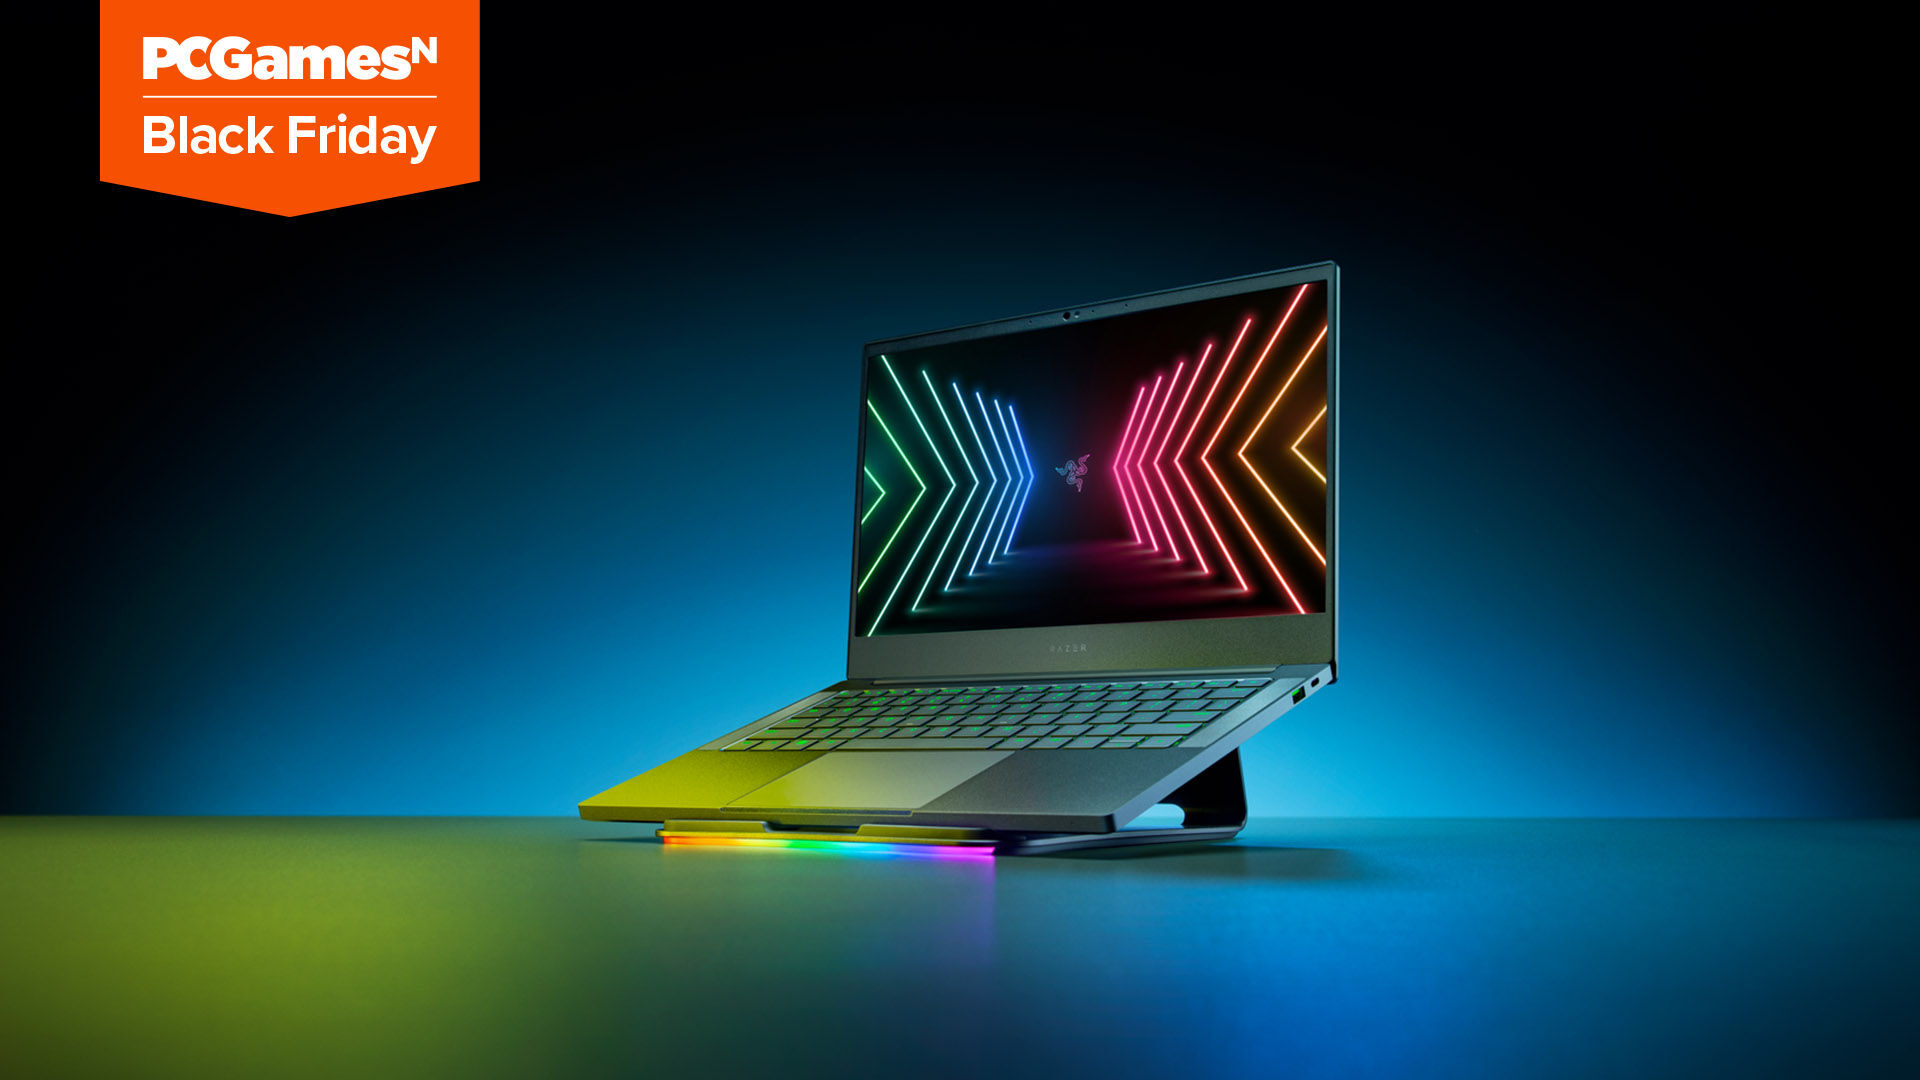 Best gaming laptop deals ahead of Black Friday